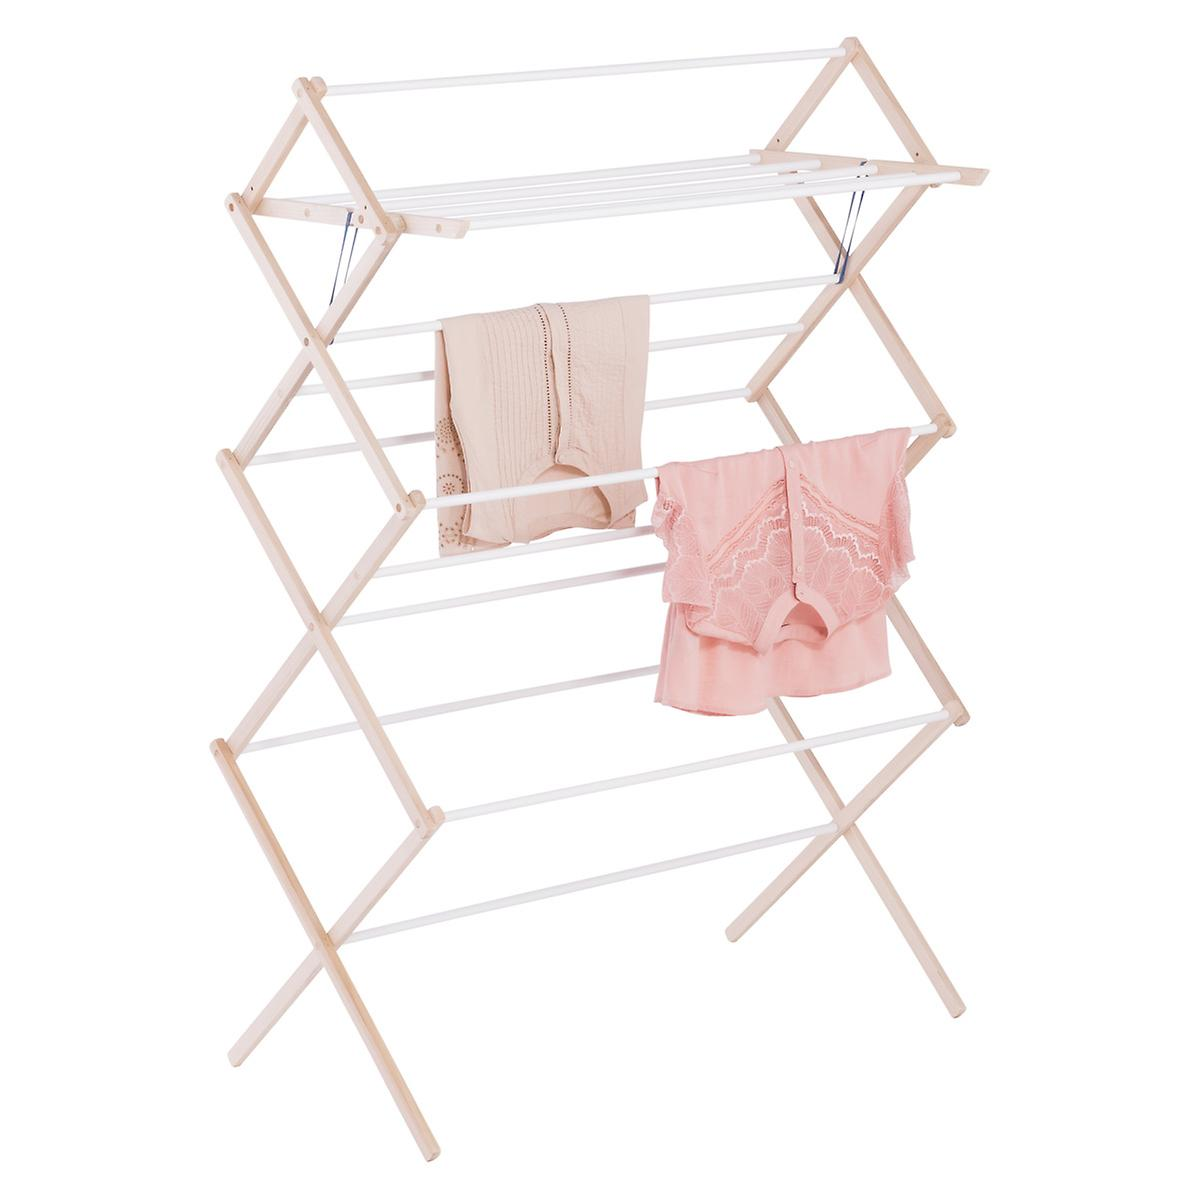 15 Dowel Wooden Clothes Drying Rack